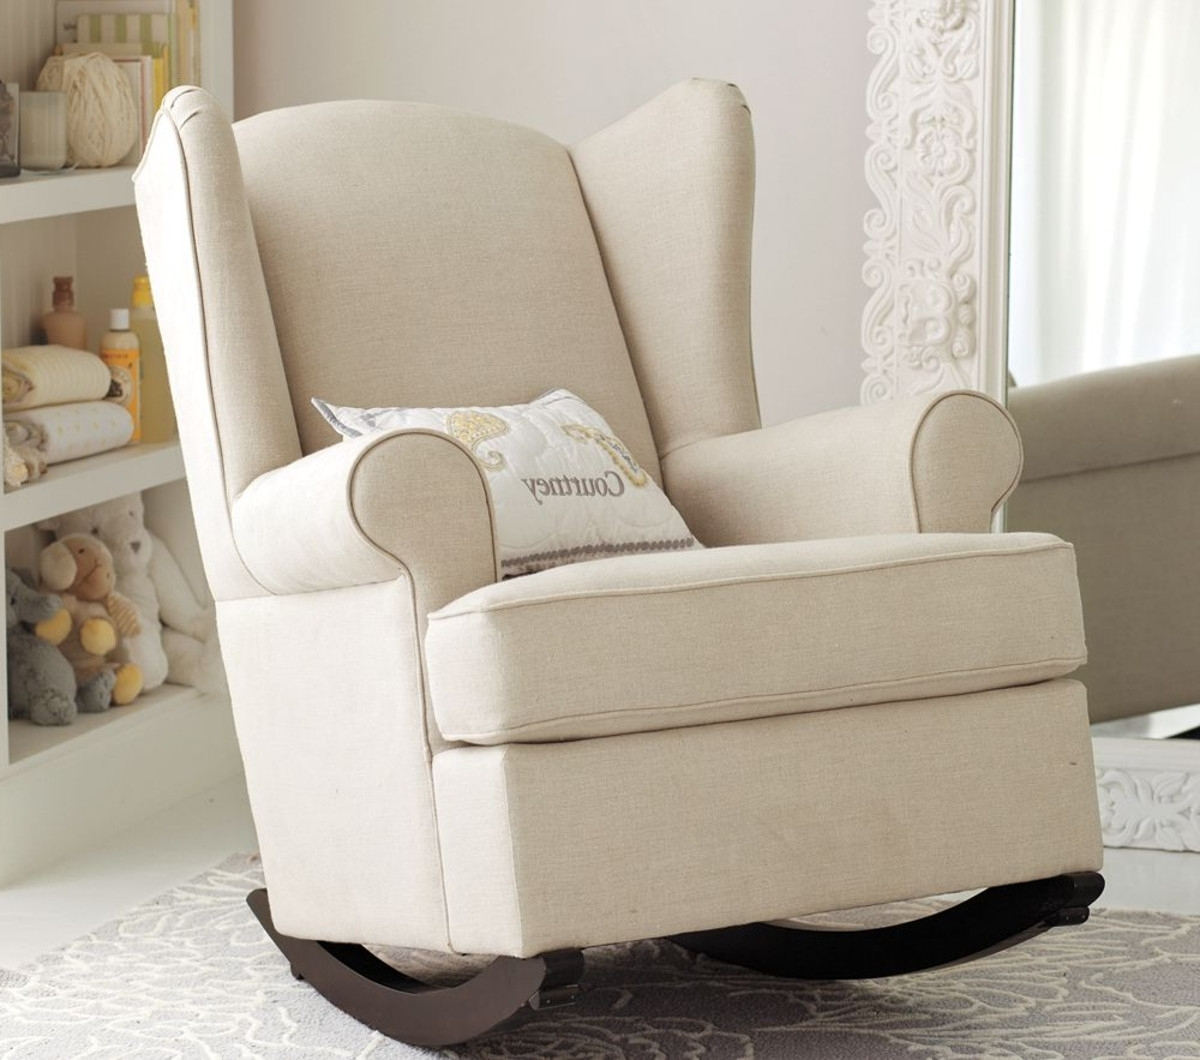 Most Current Nursery Rocking Chair Courtney – Nursery Rocking Chair For Mom And Inside Rocking Chairs For Nursery (View 5 of 15)